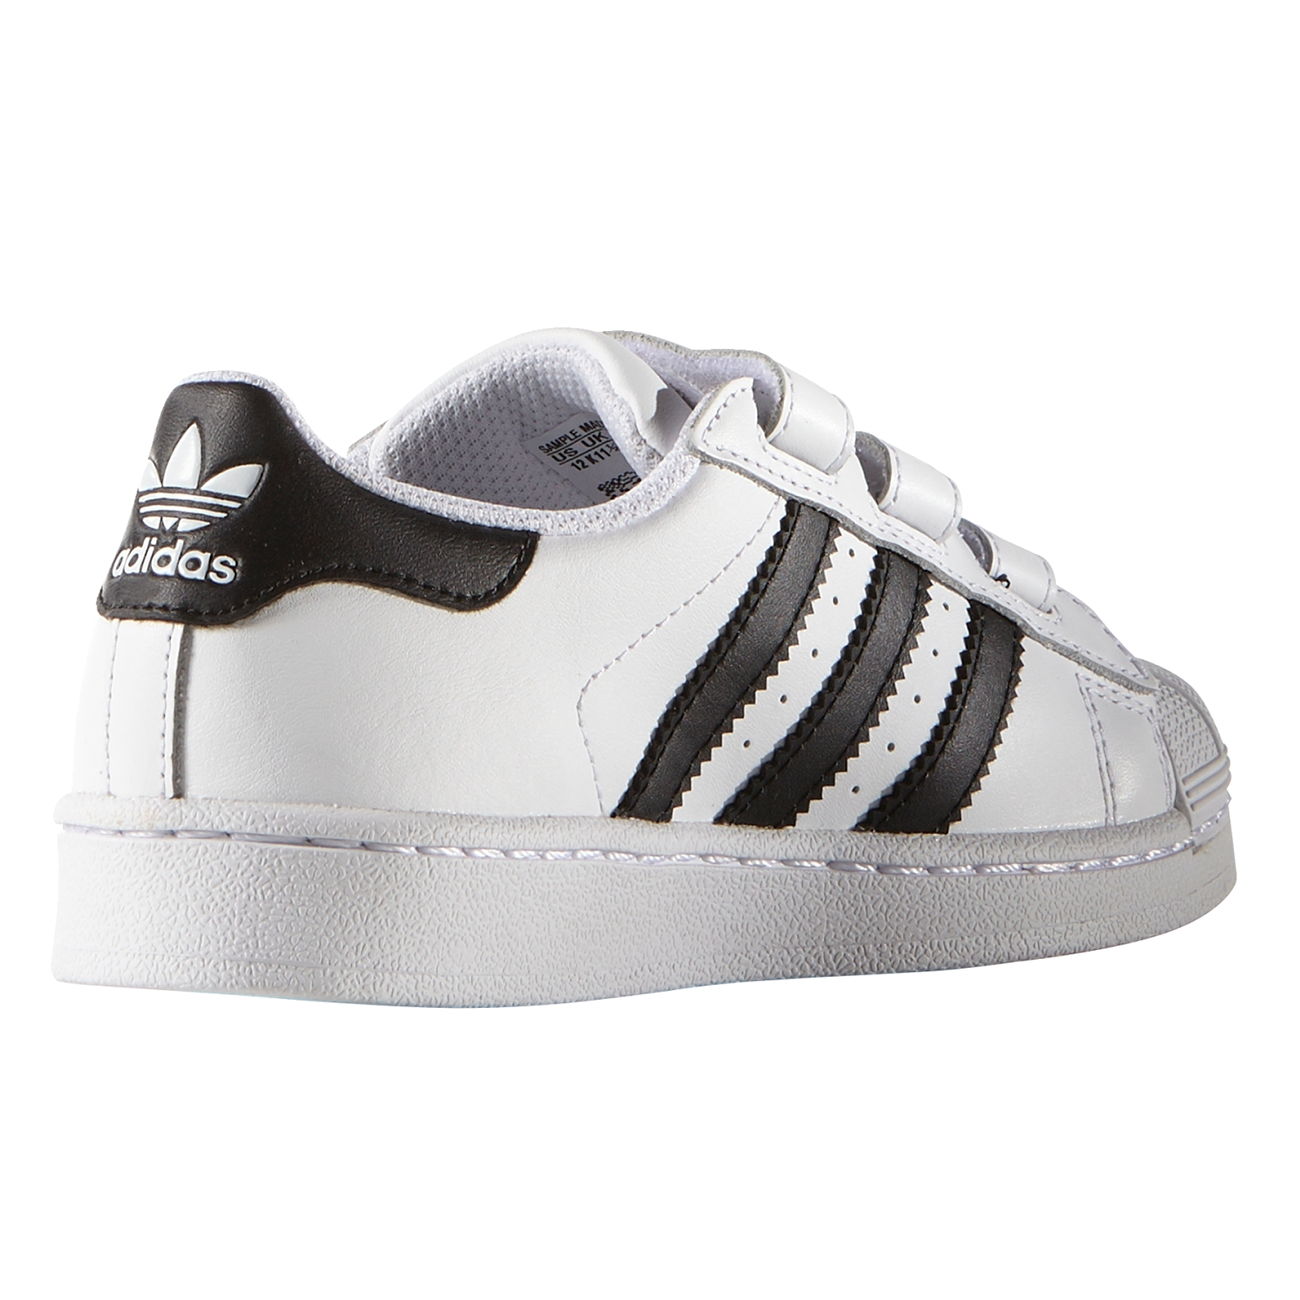 telar idea Énfasis  adidas Superstar Sneakers White/Black B26070